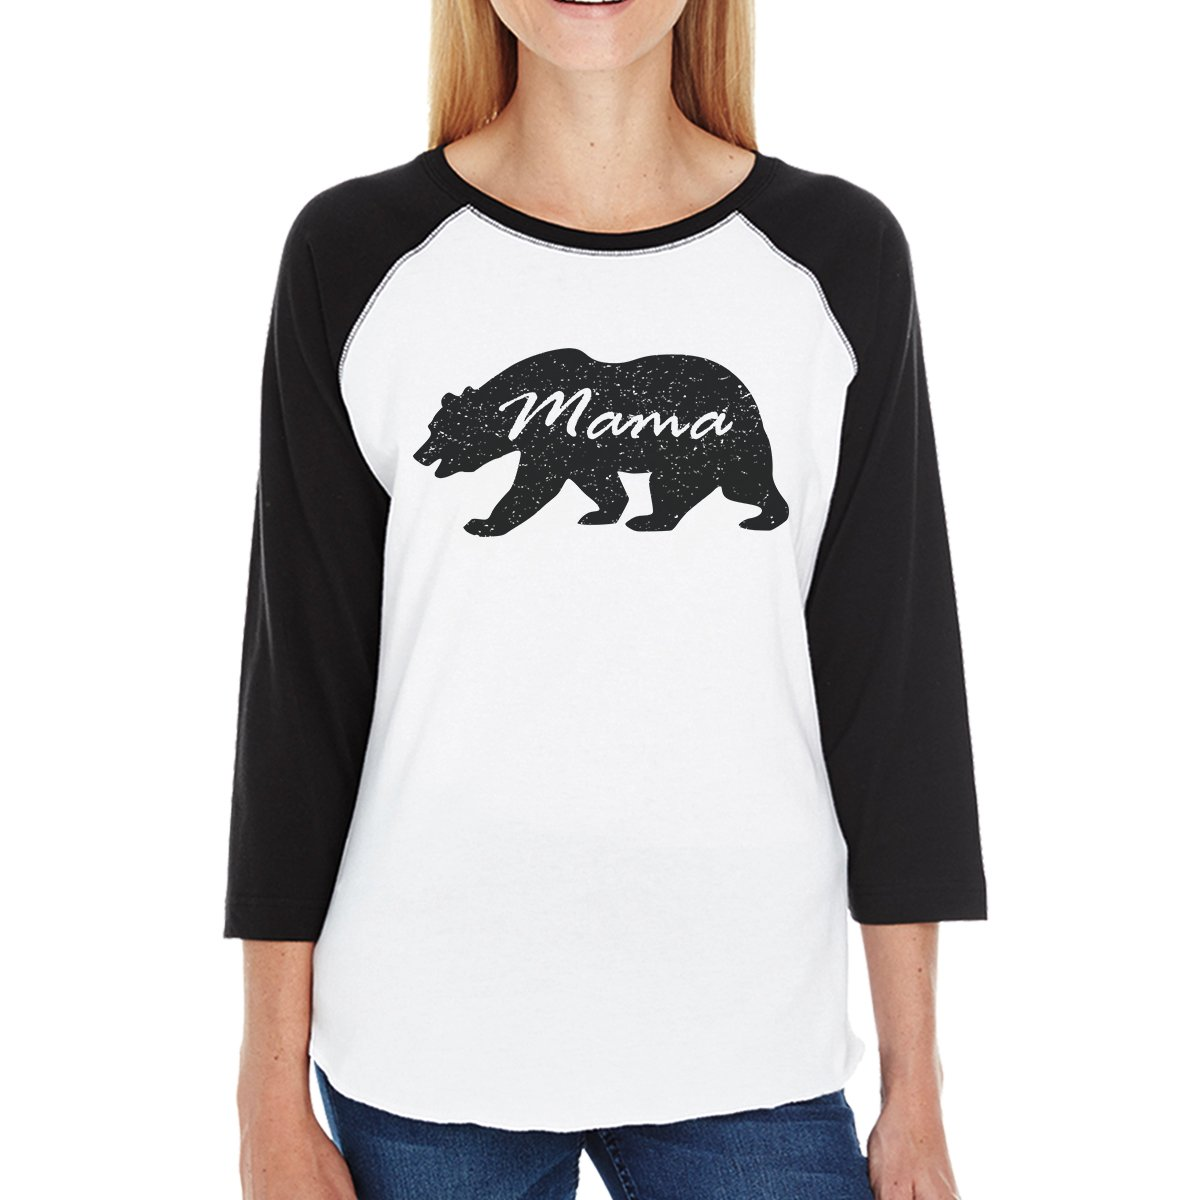 Mama Bear Womens 3/4 Black Sleeve Raglan Shirt Gift For New Moms 365 Printing inc JBS148BKWT WL